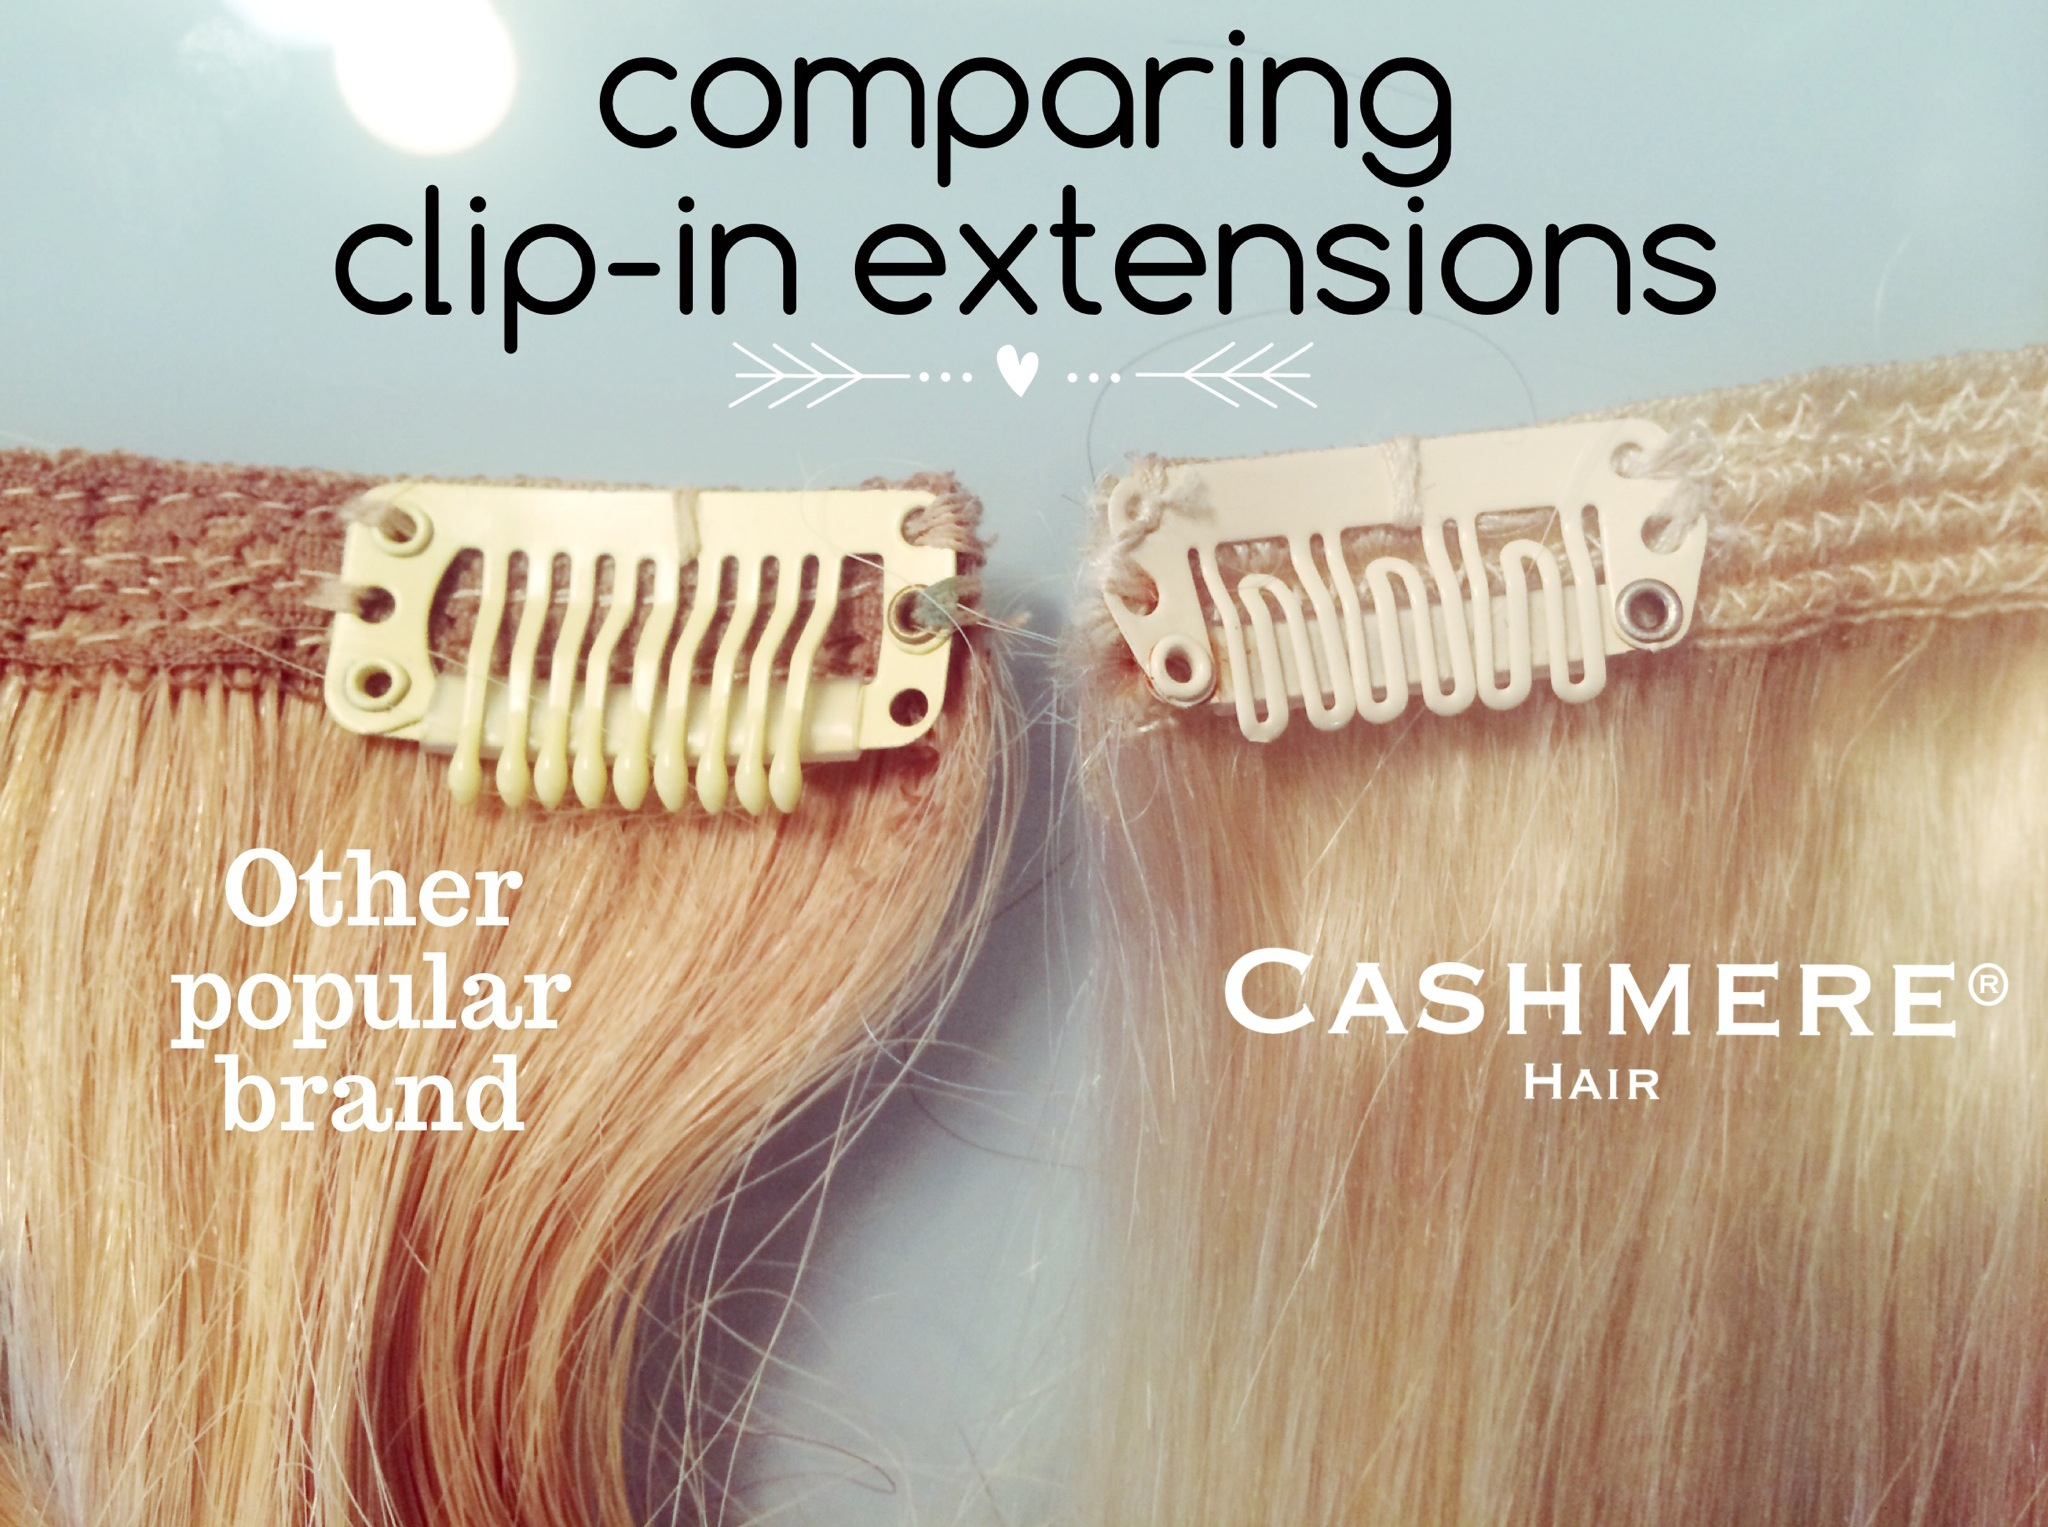 Comparing Clip In Hair Extension Brands Cashmere Hair Clip In